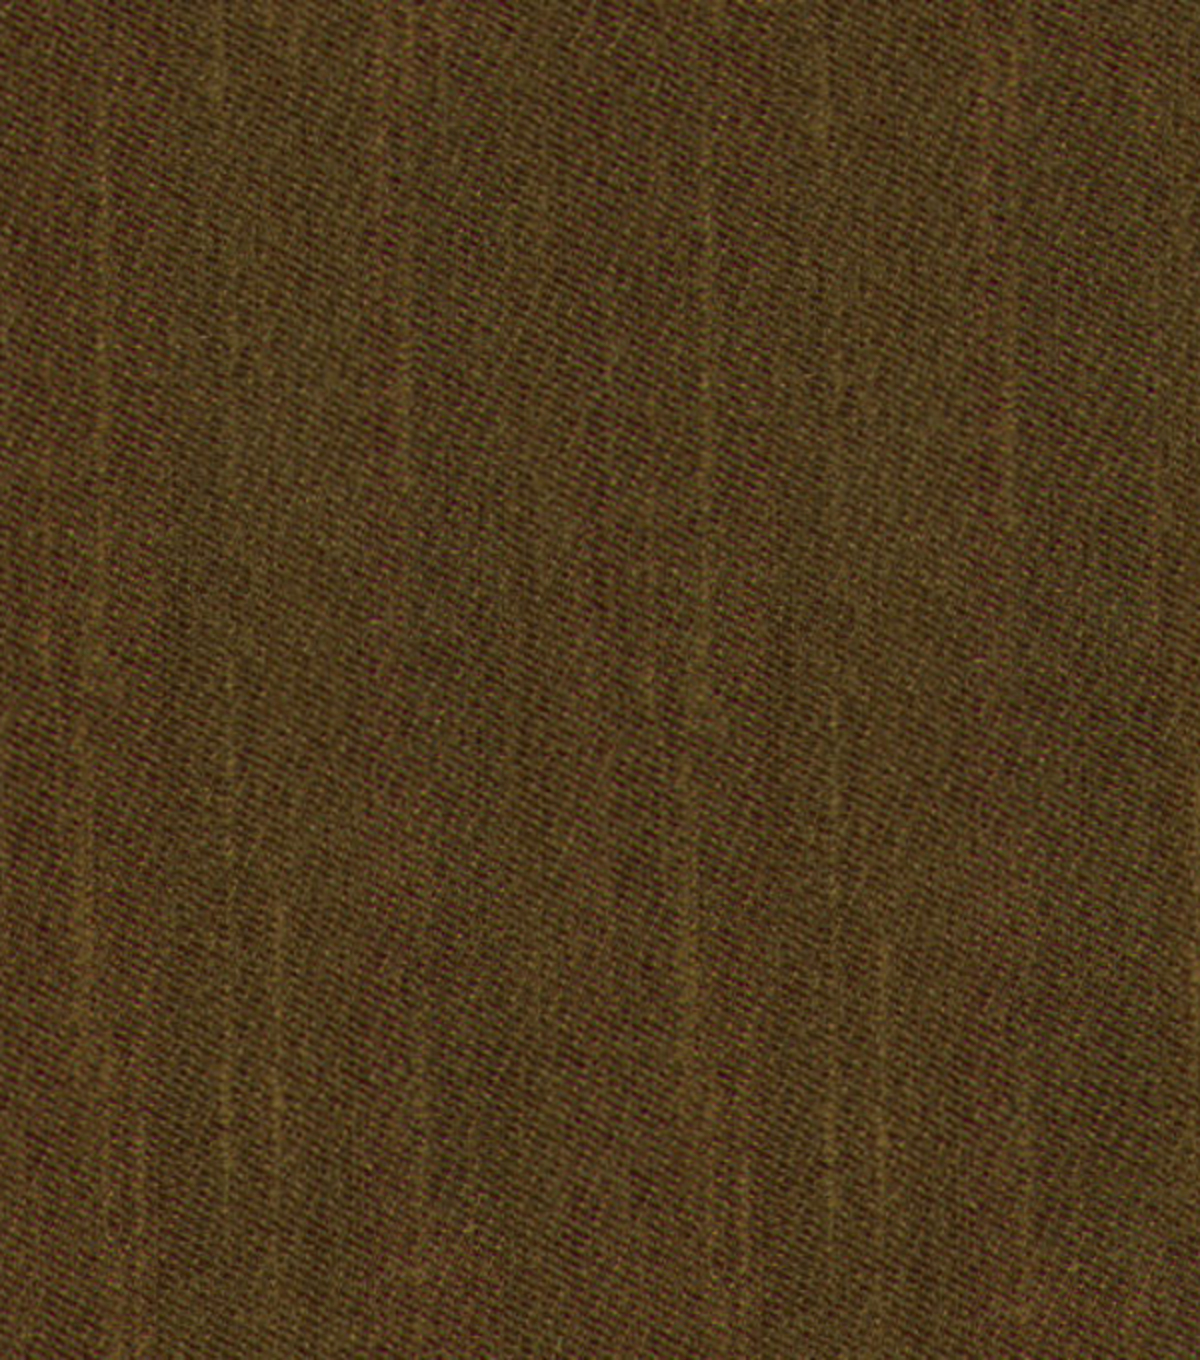 "Home Decor 8""x8"" Fabric Swatch-Barrow M7407 5370 Walnut"